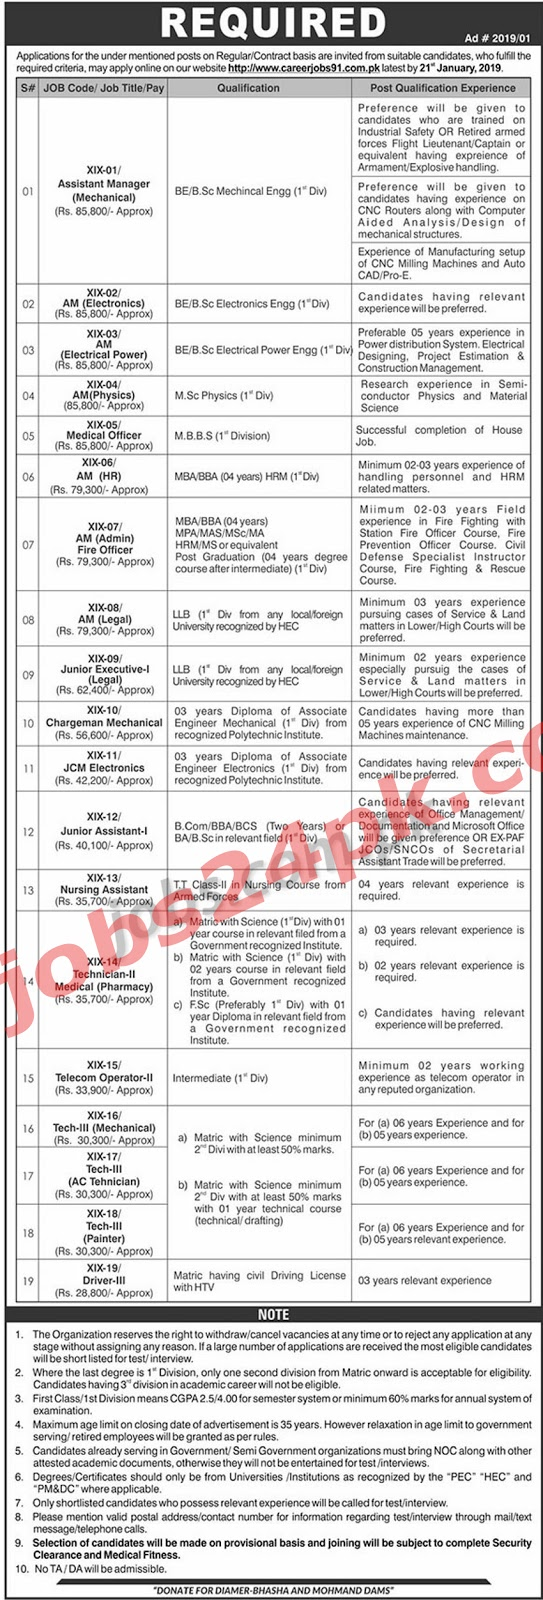 Pakistan Atomic Energy Commission (PAEC) Jobs 2019 Apply Online